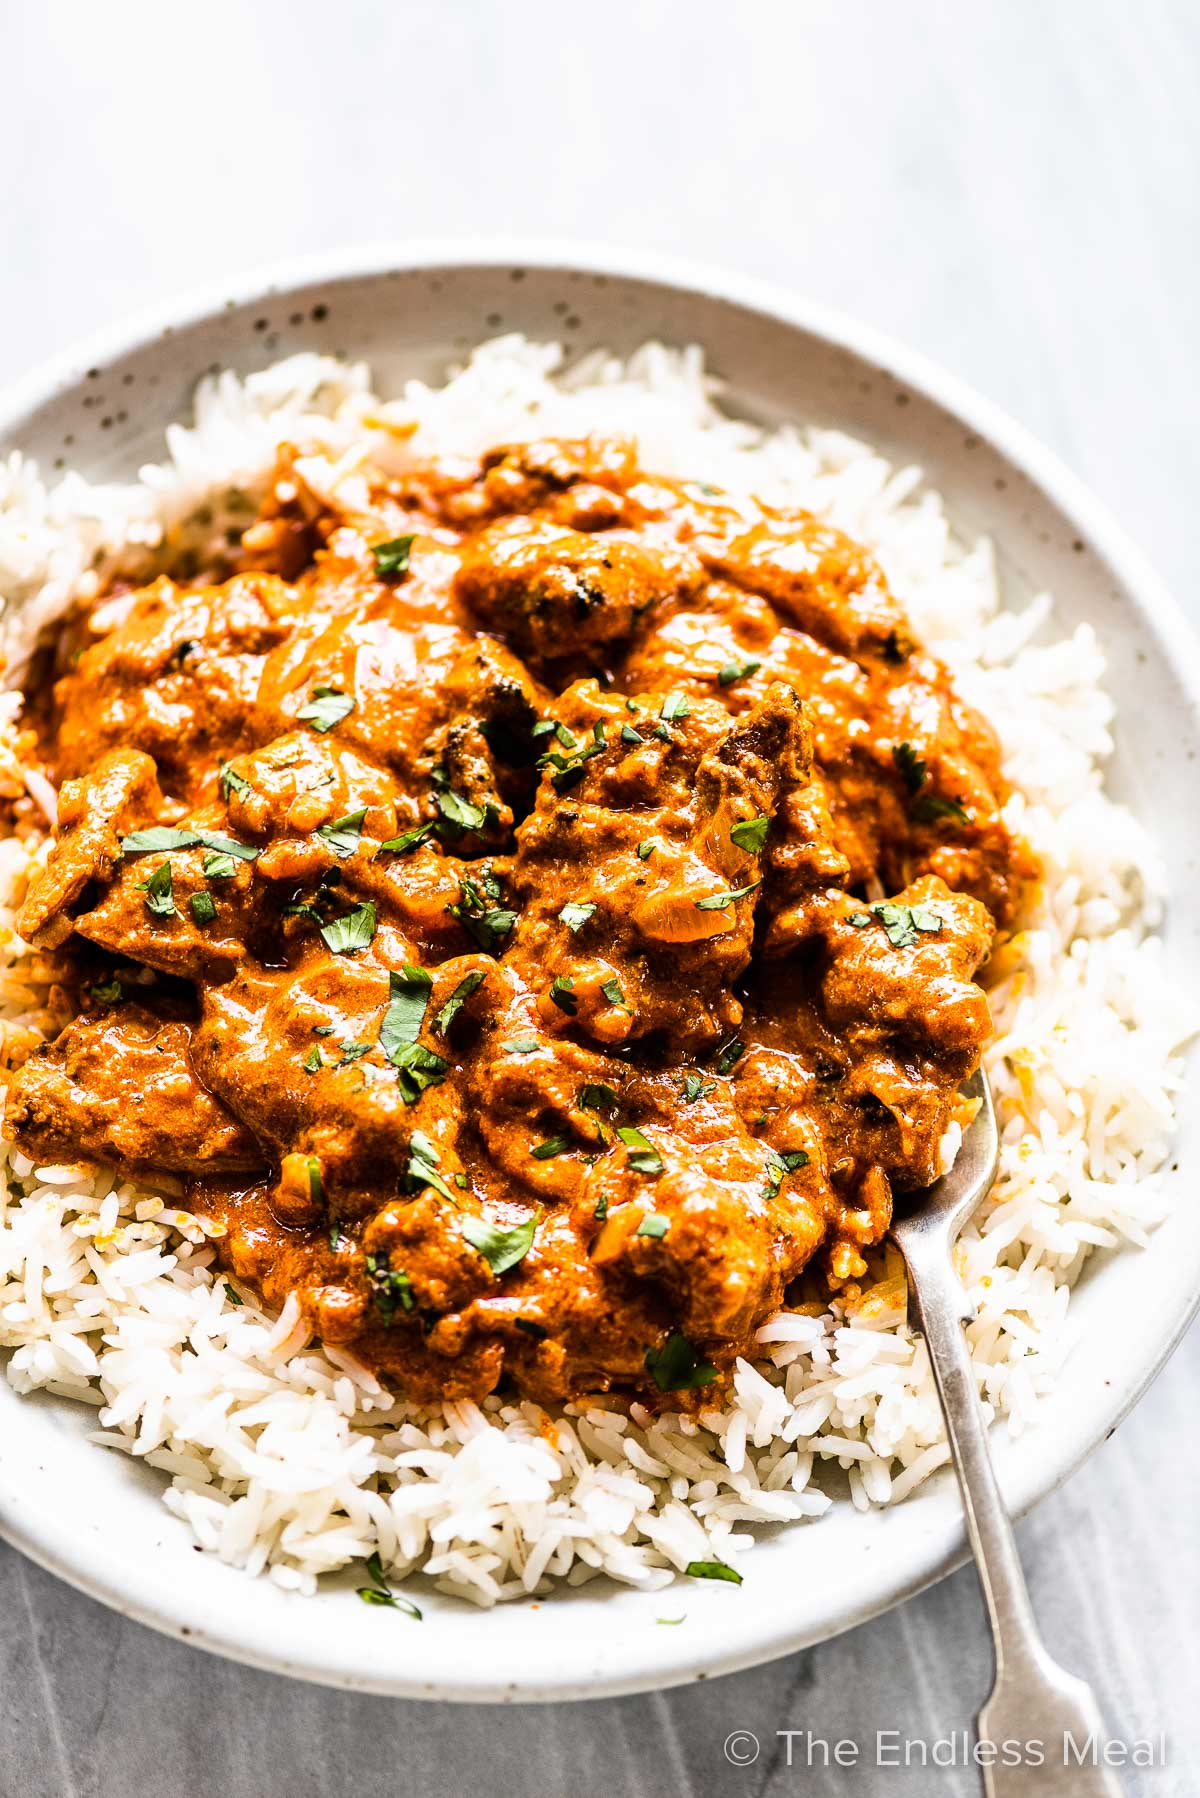 Chicken tikka masala on rice with a fork.